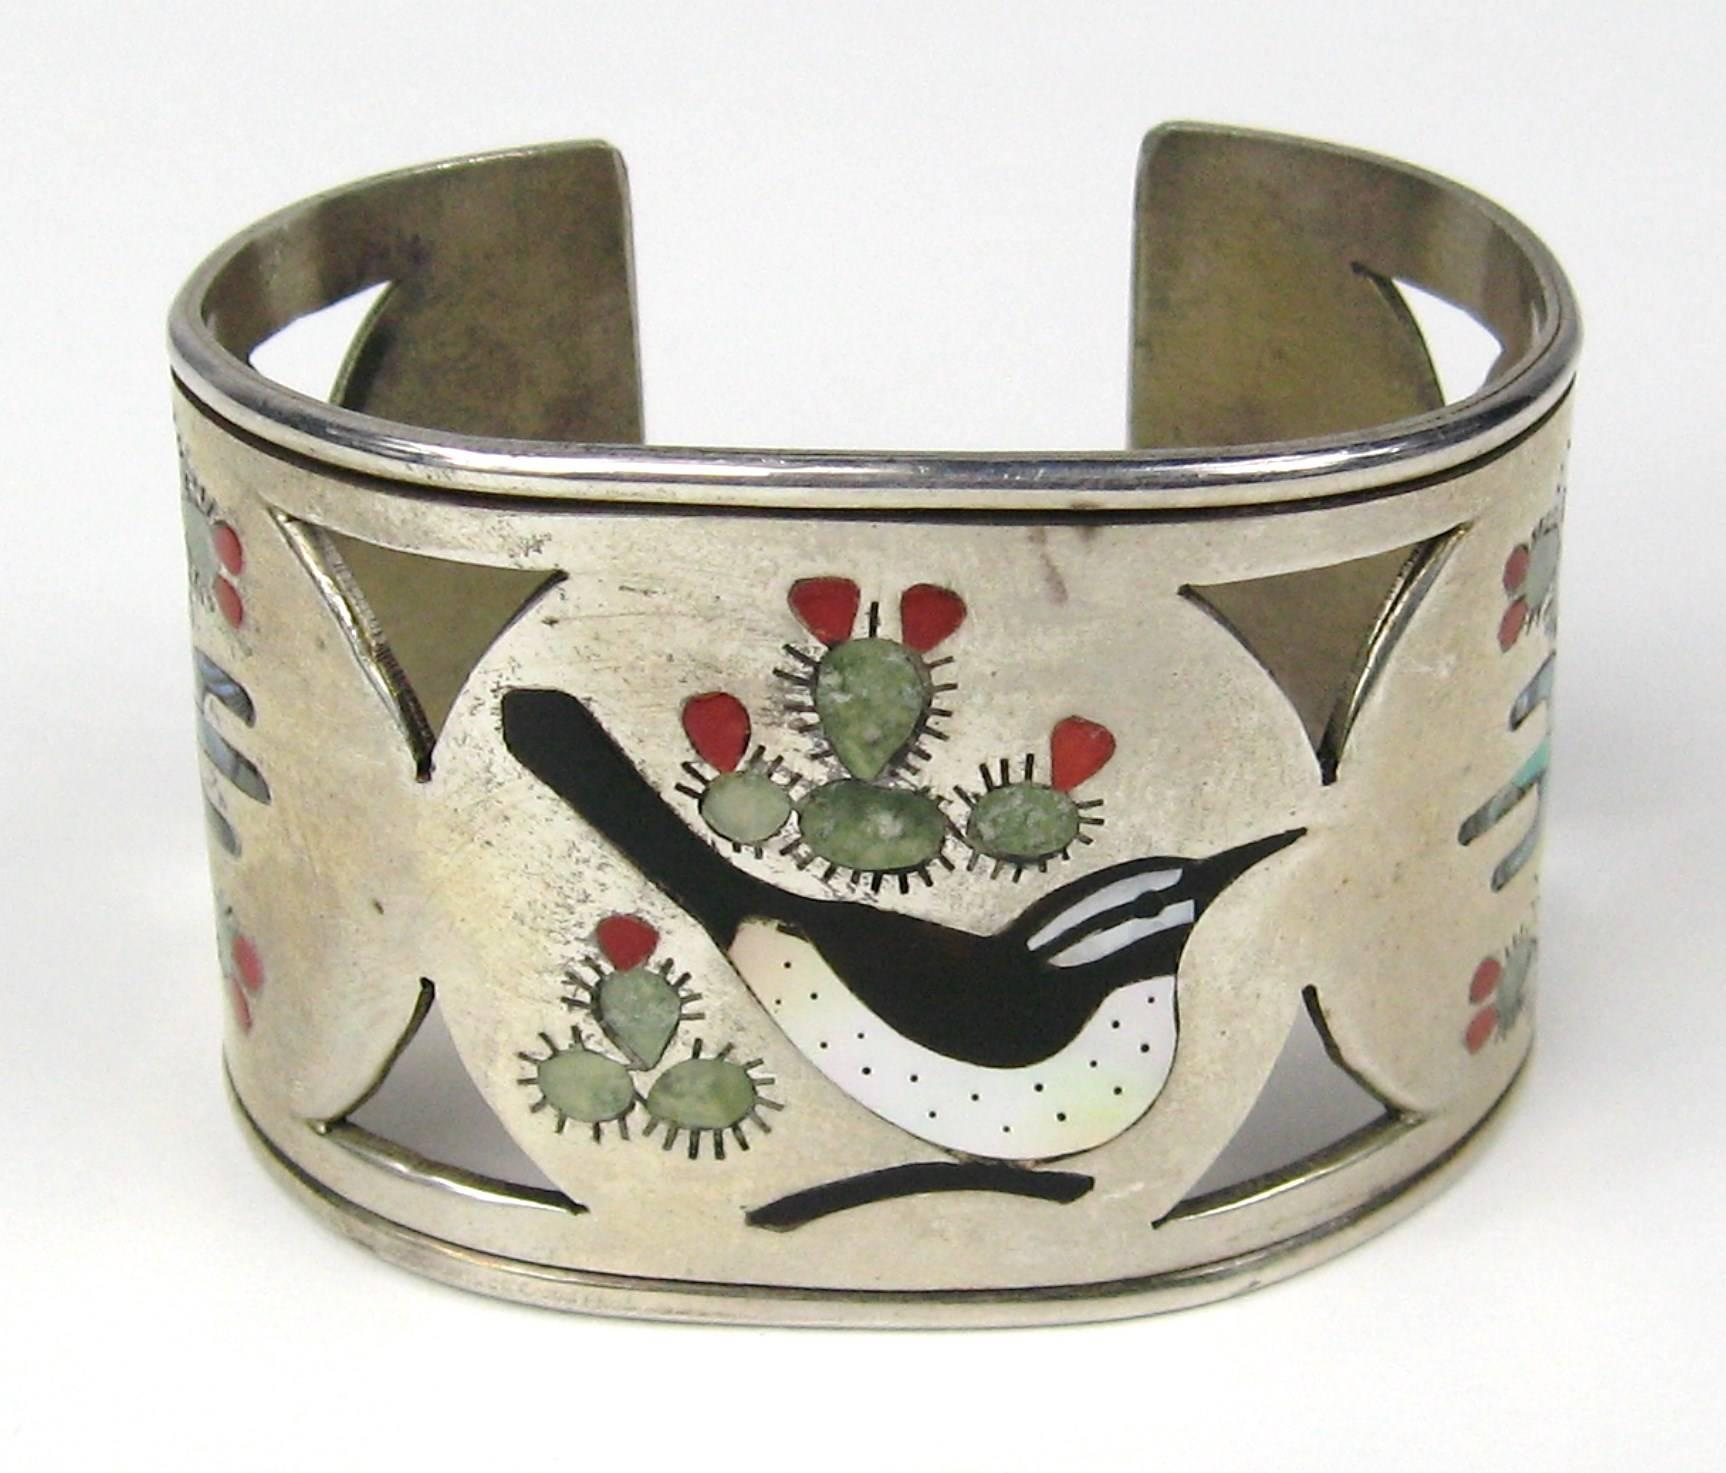 14be9042541 Sterling Silver ZUNI Cuff Bird Cactus Coral Mother of pearl Bracelet For  Sale at 1stdibs